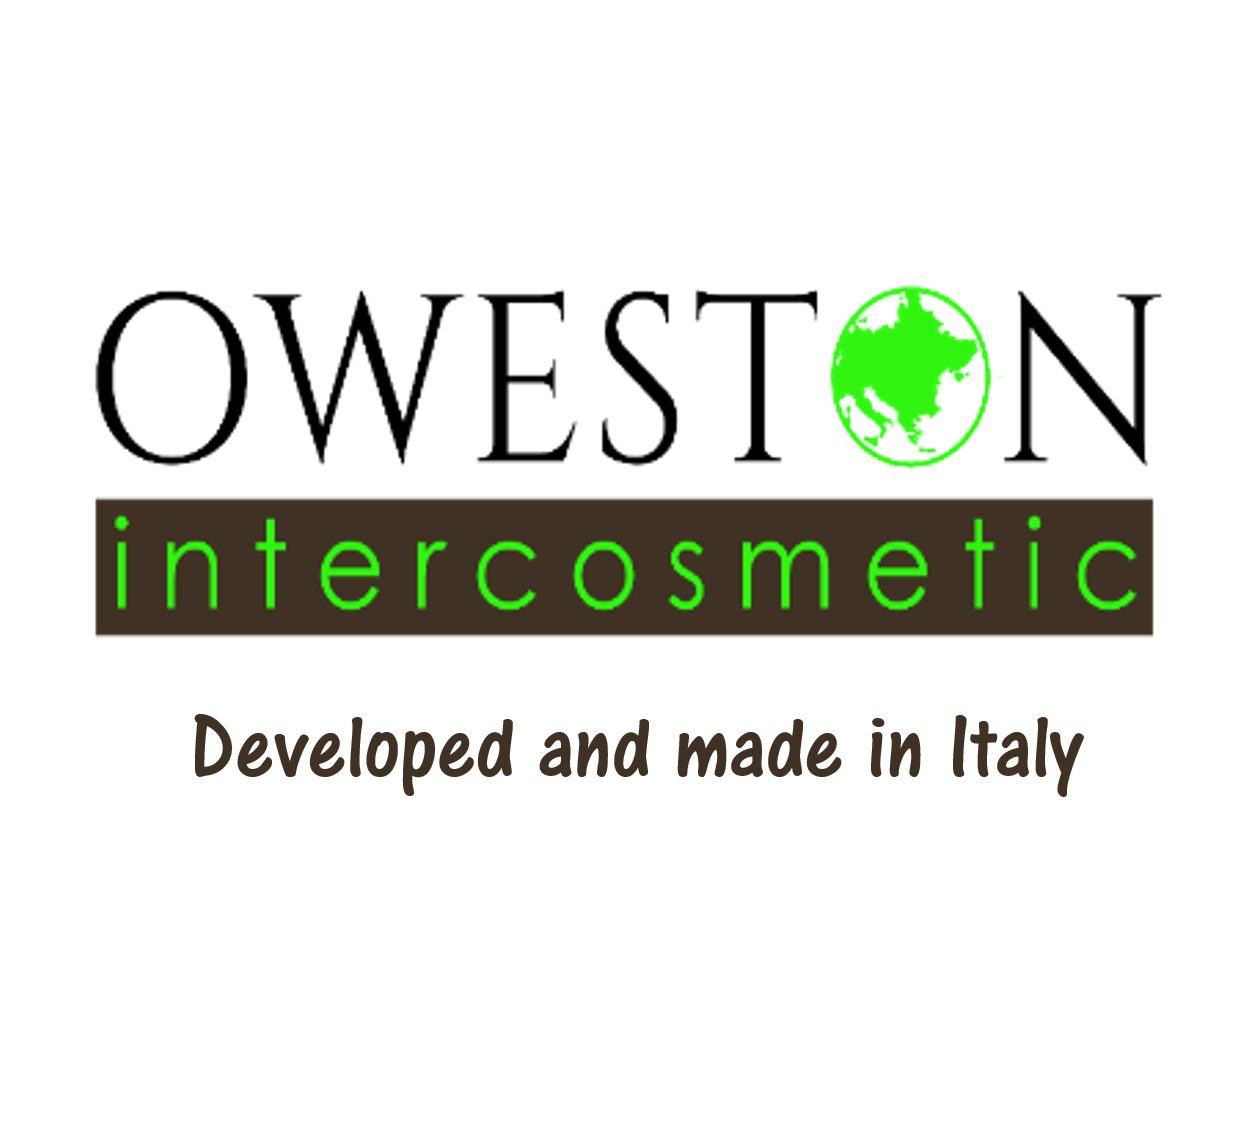 Logo oweston